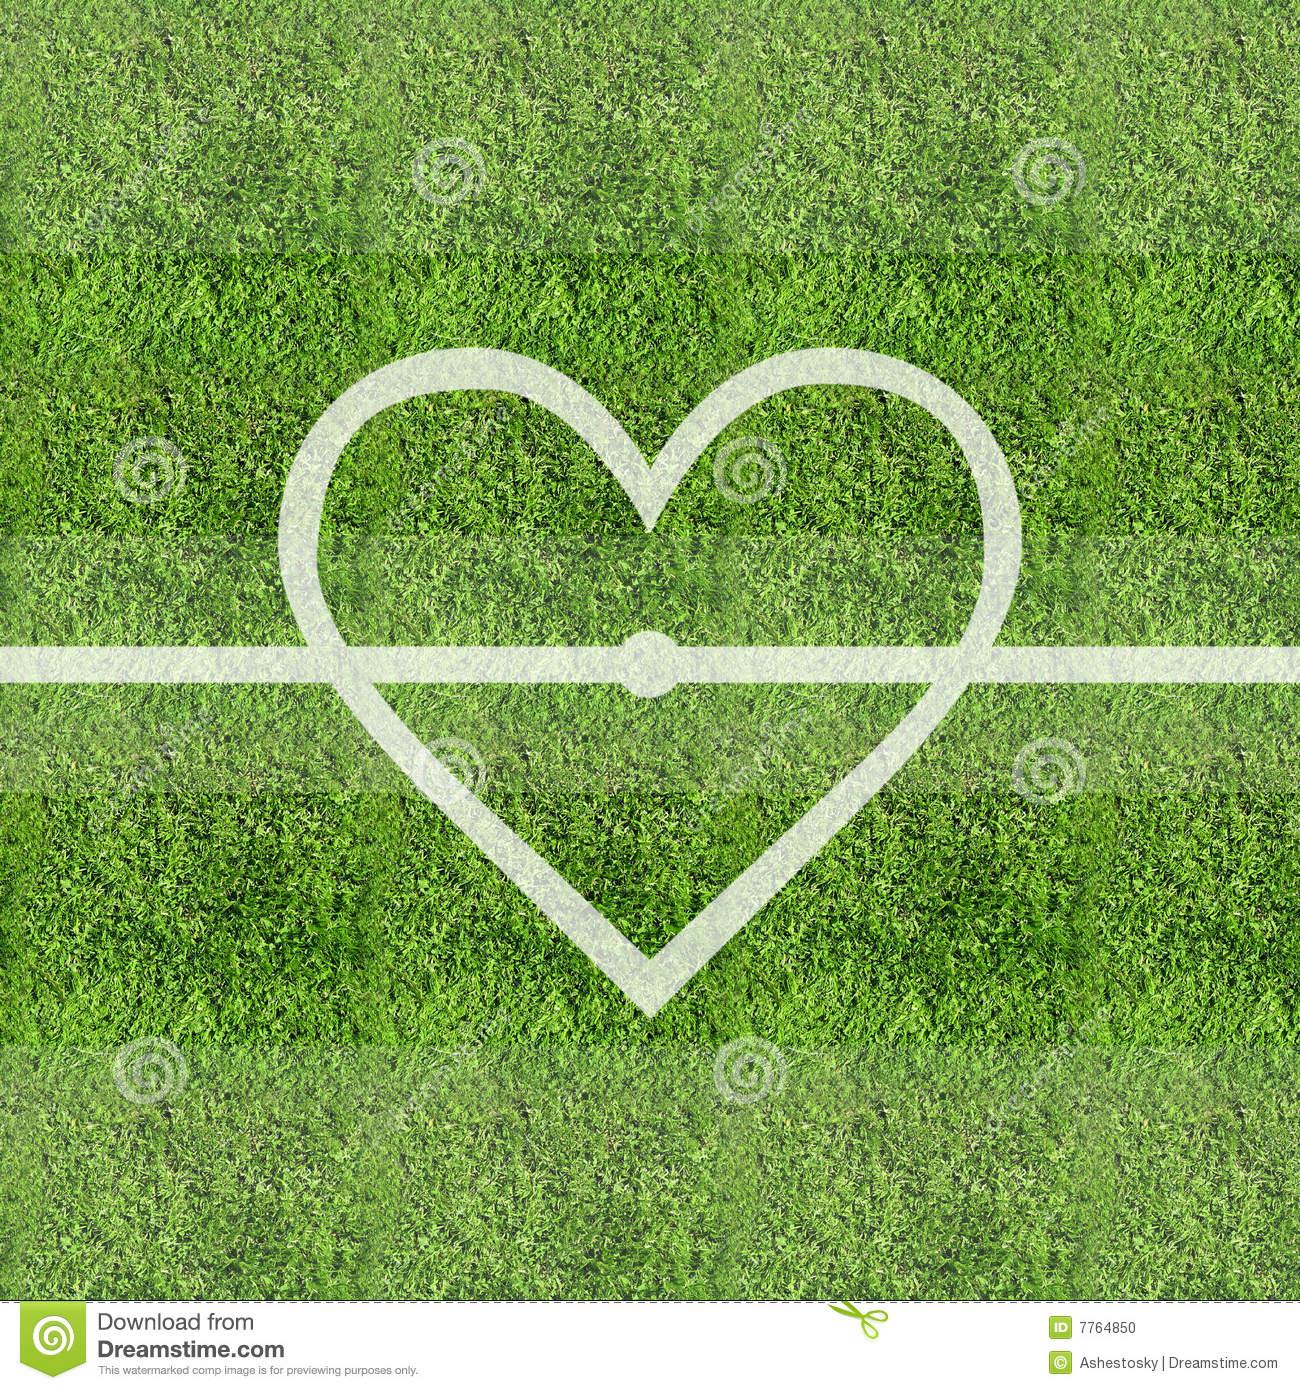 love soccer grass field background stock photo